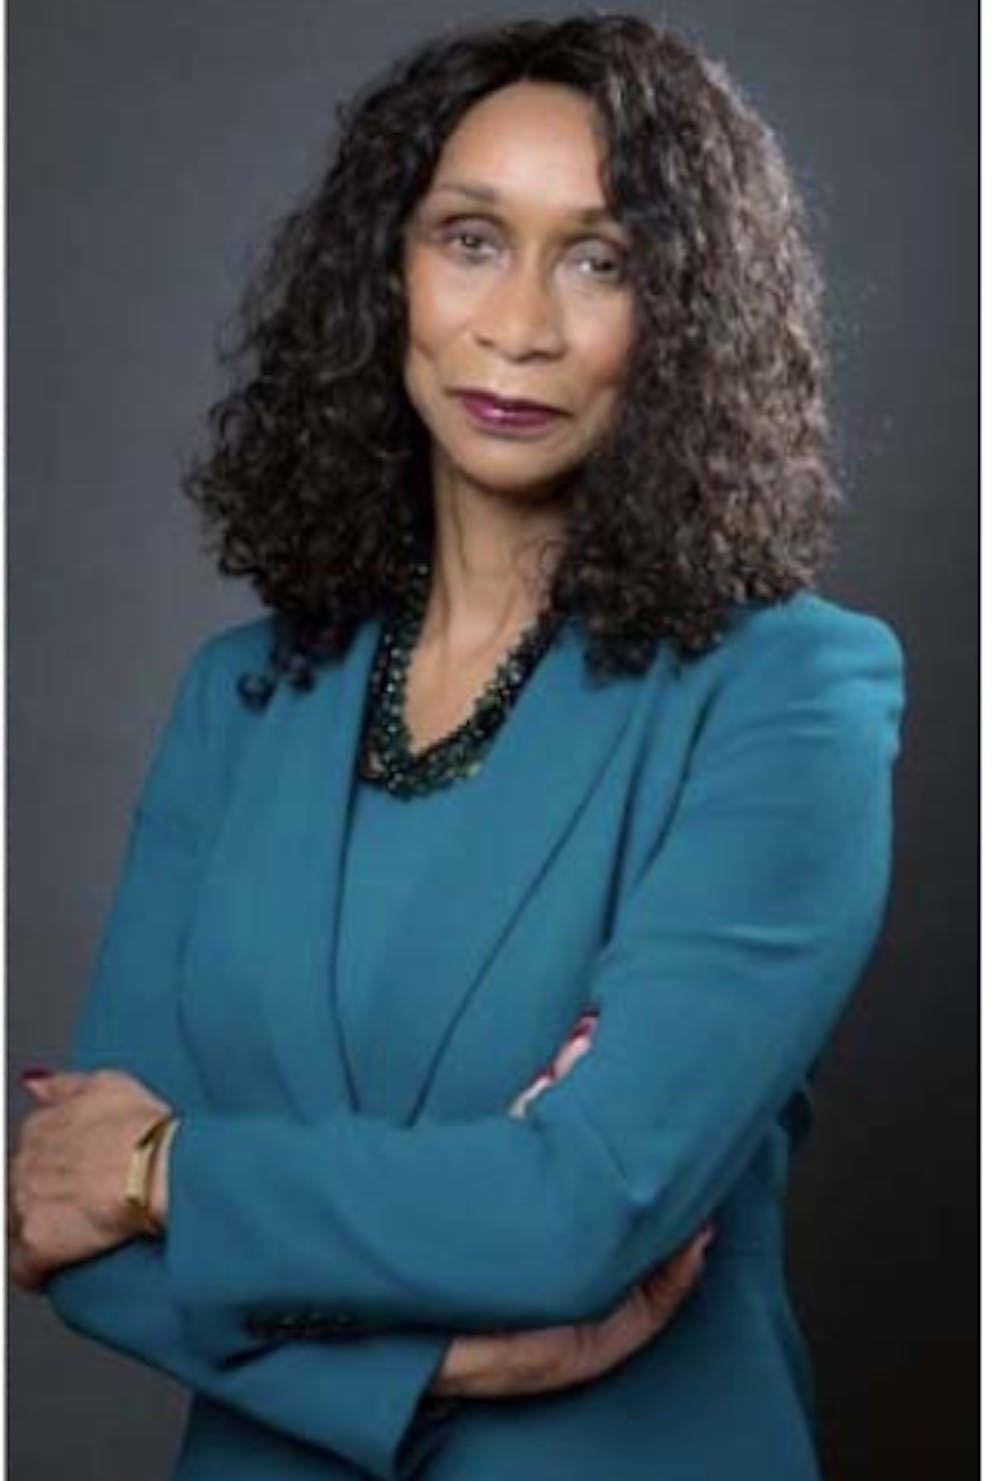 <p>Carolyn Jefferson Jenkins, a Western College for Women alumna, is this year&#x27;s commencement speaker.</p>